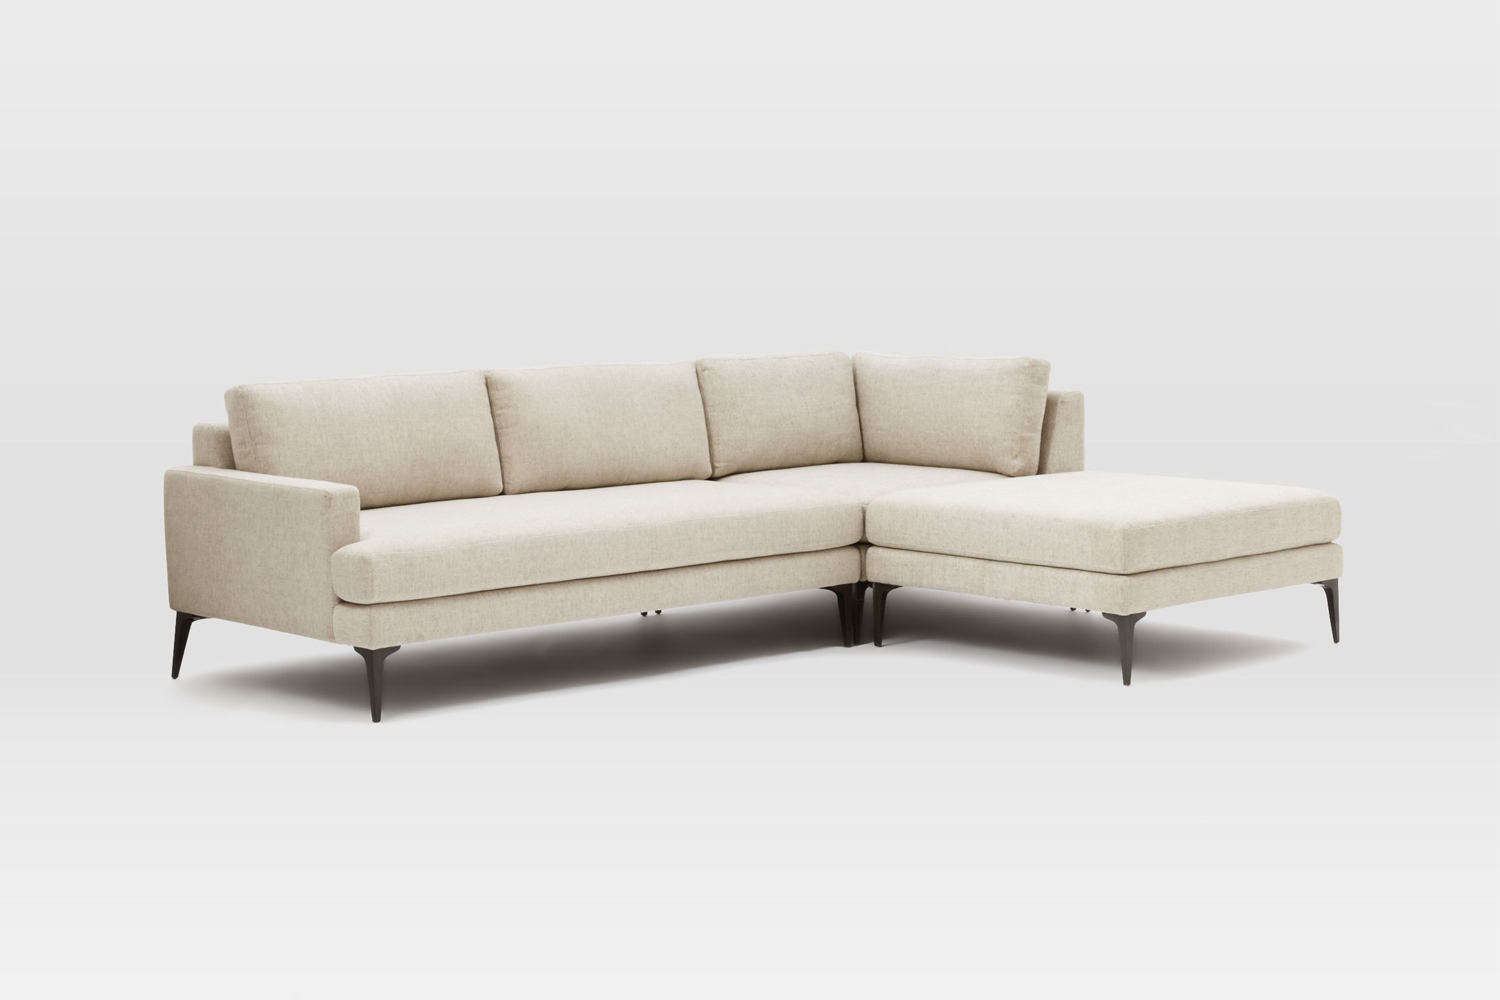 Awe Inspiring 10 Easy Pieces Sectional Chaise Sofas Remodelista Cjindustries Chair Design For Home Cjindustriesco